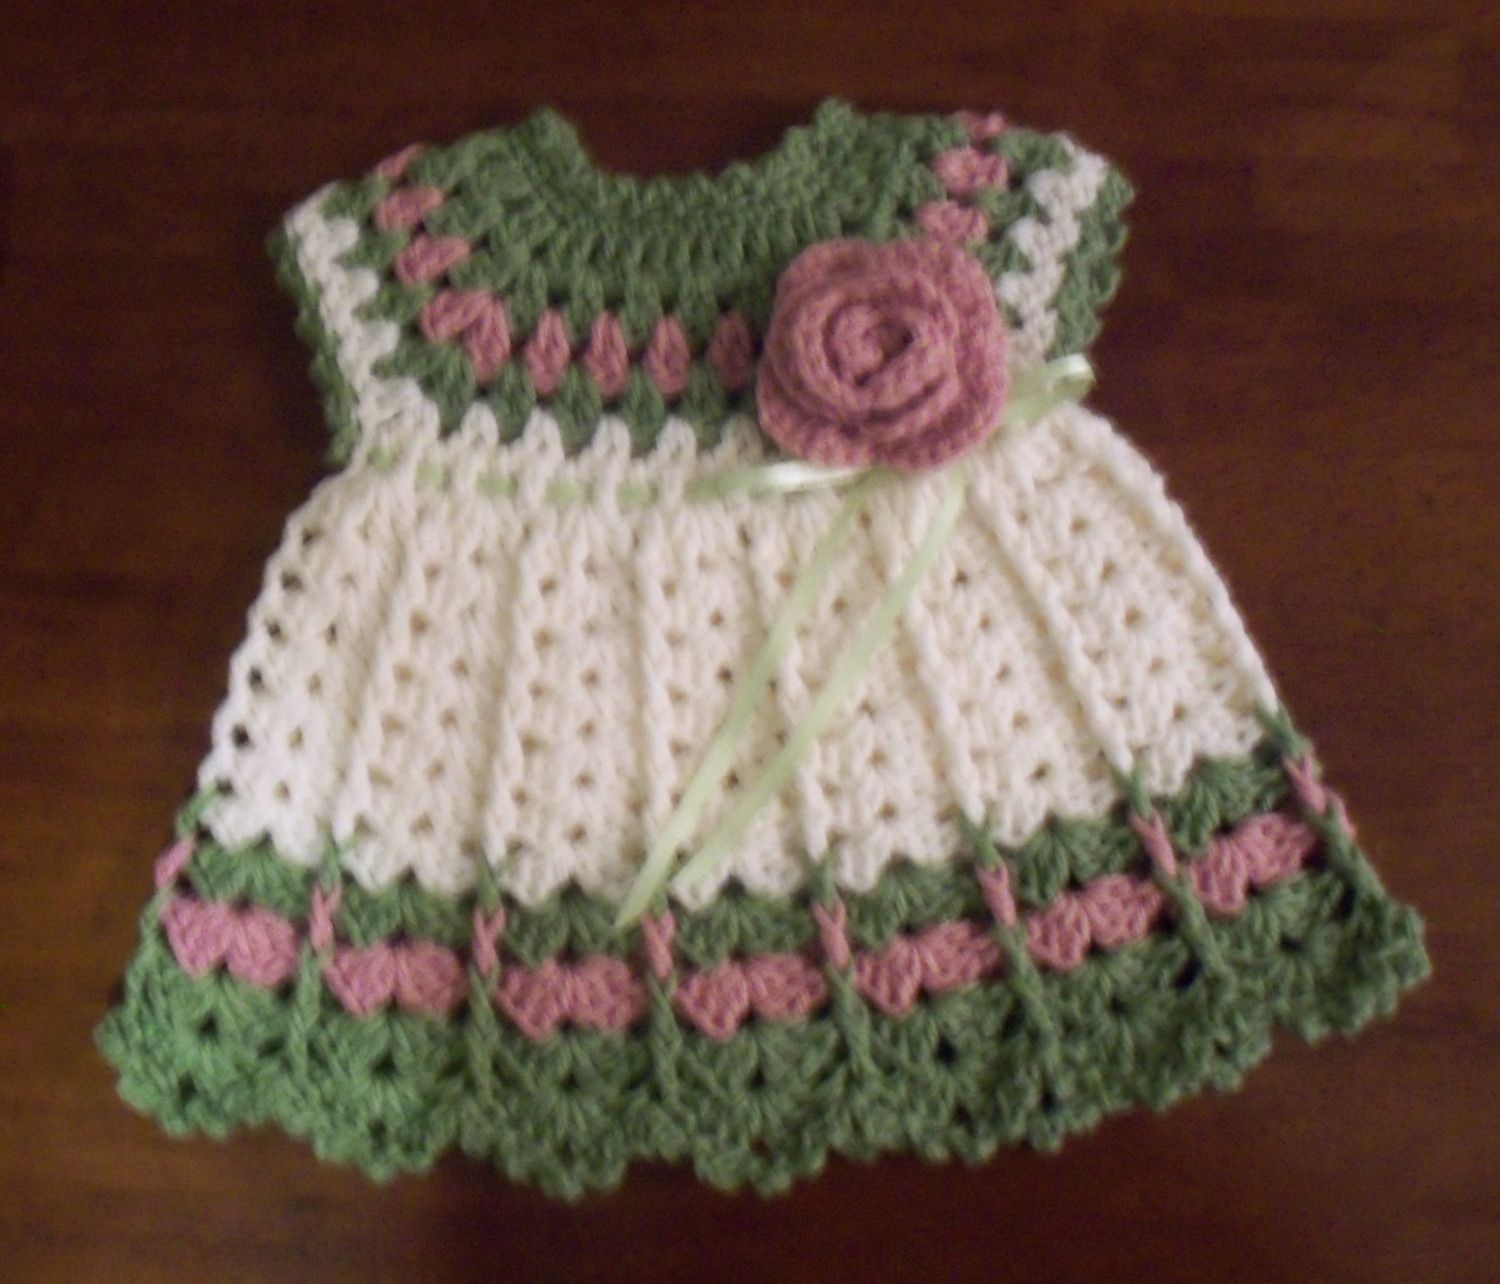 Rosebud Baby Dress Pattern 0 3 and 3 6 month sizes included